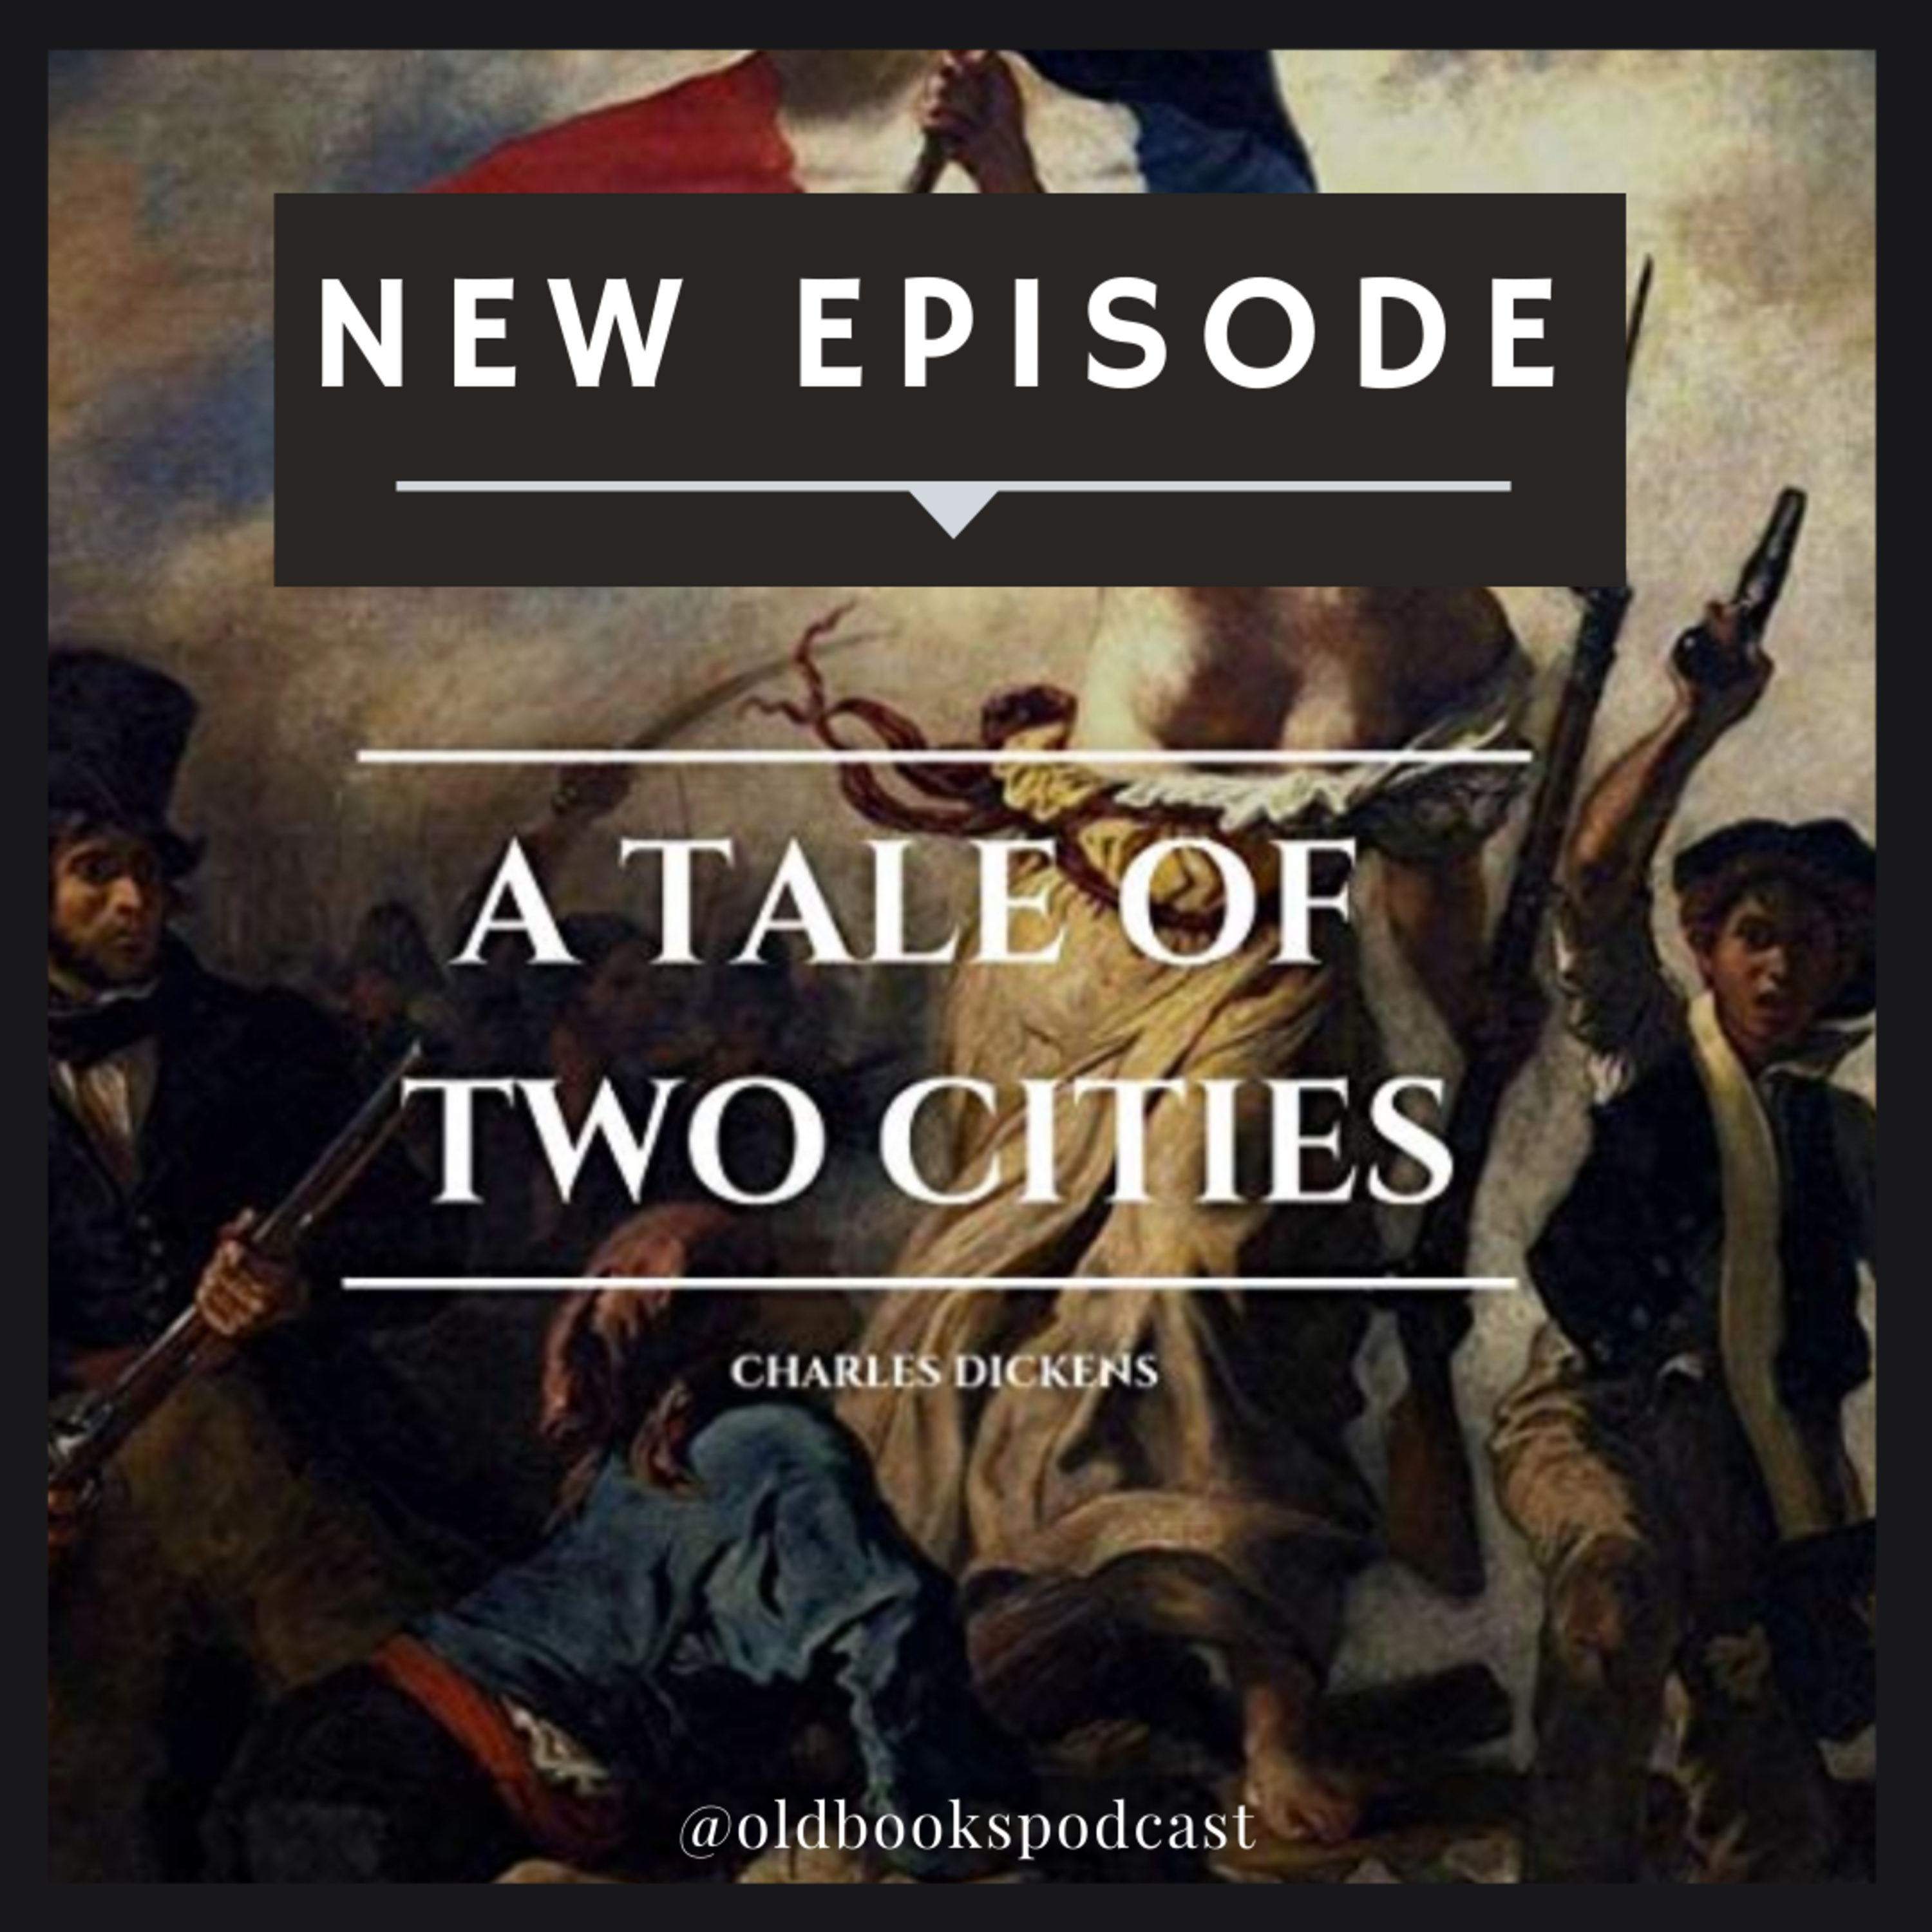 Ep 23 - A Tale of Two Cities pt 1